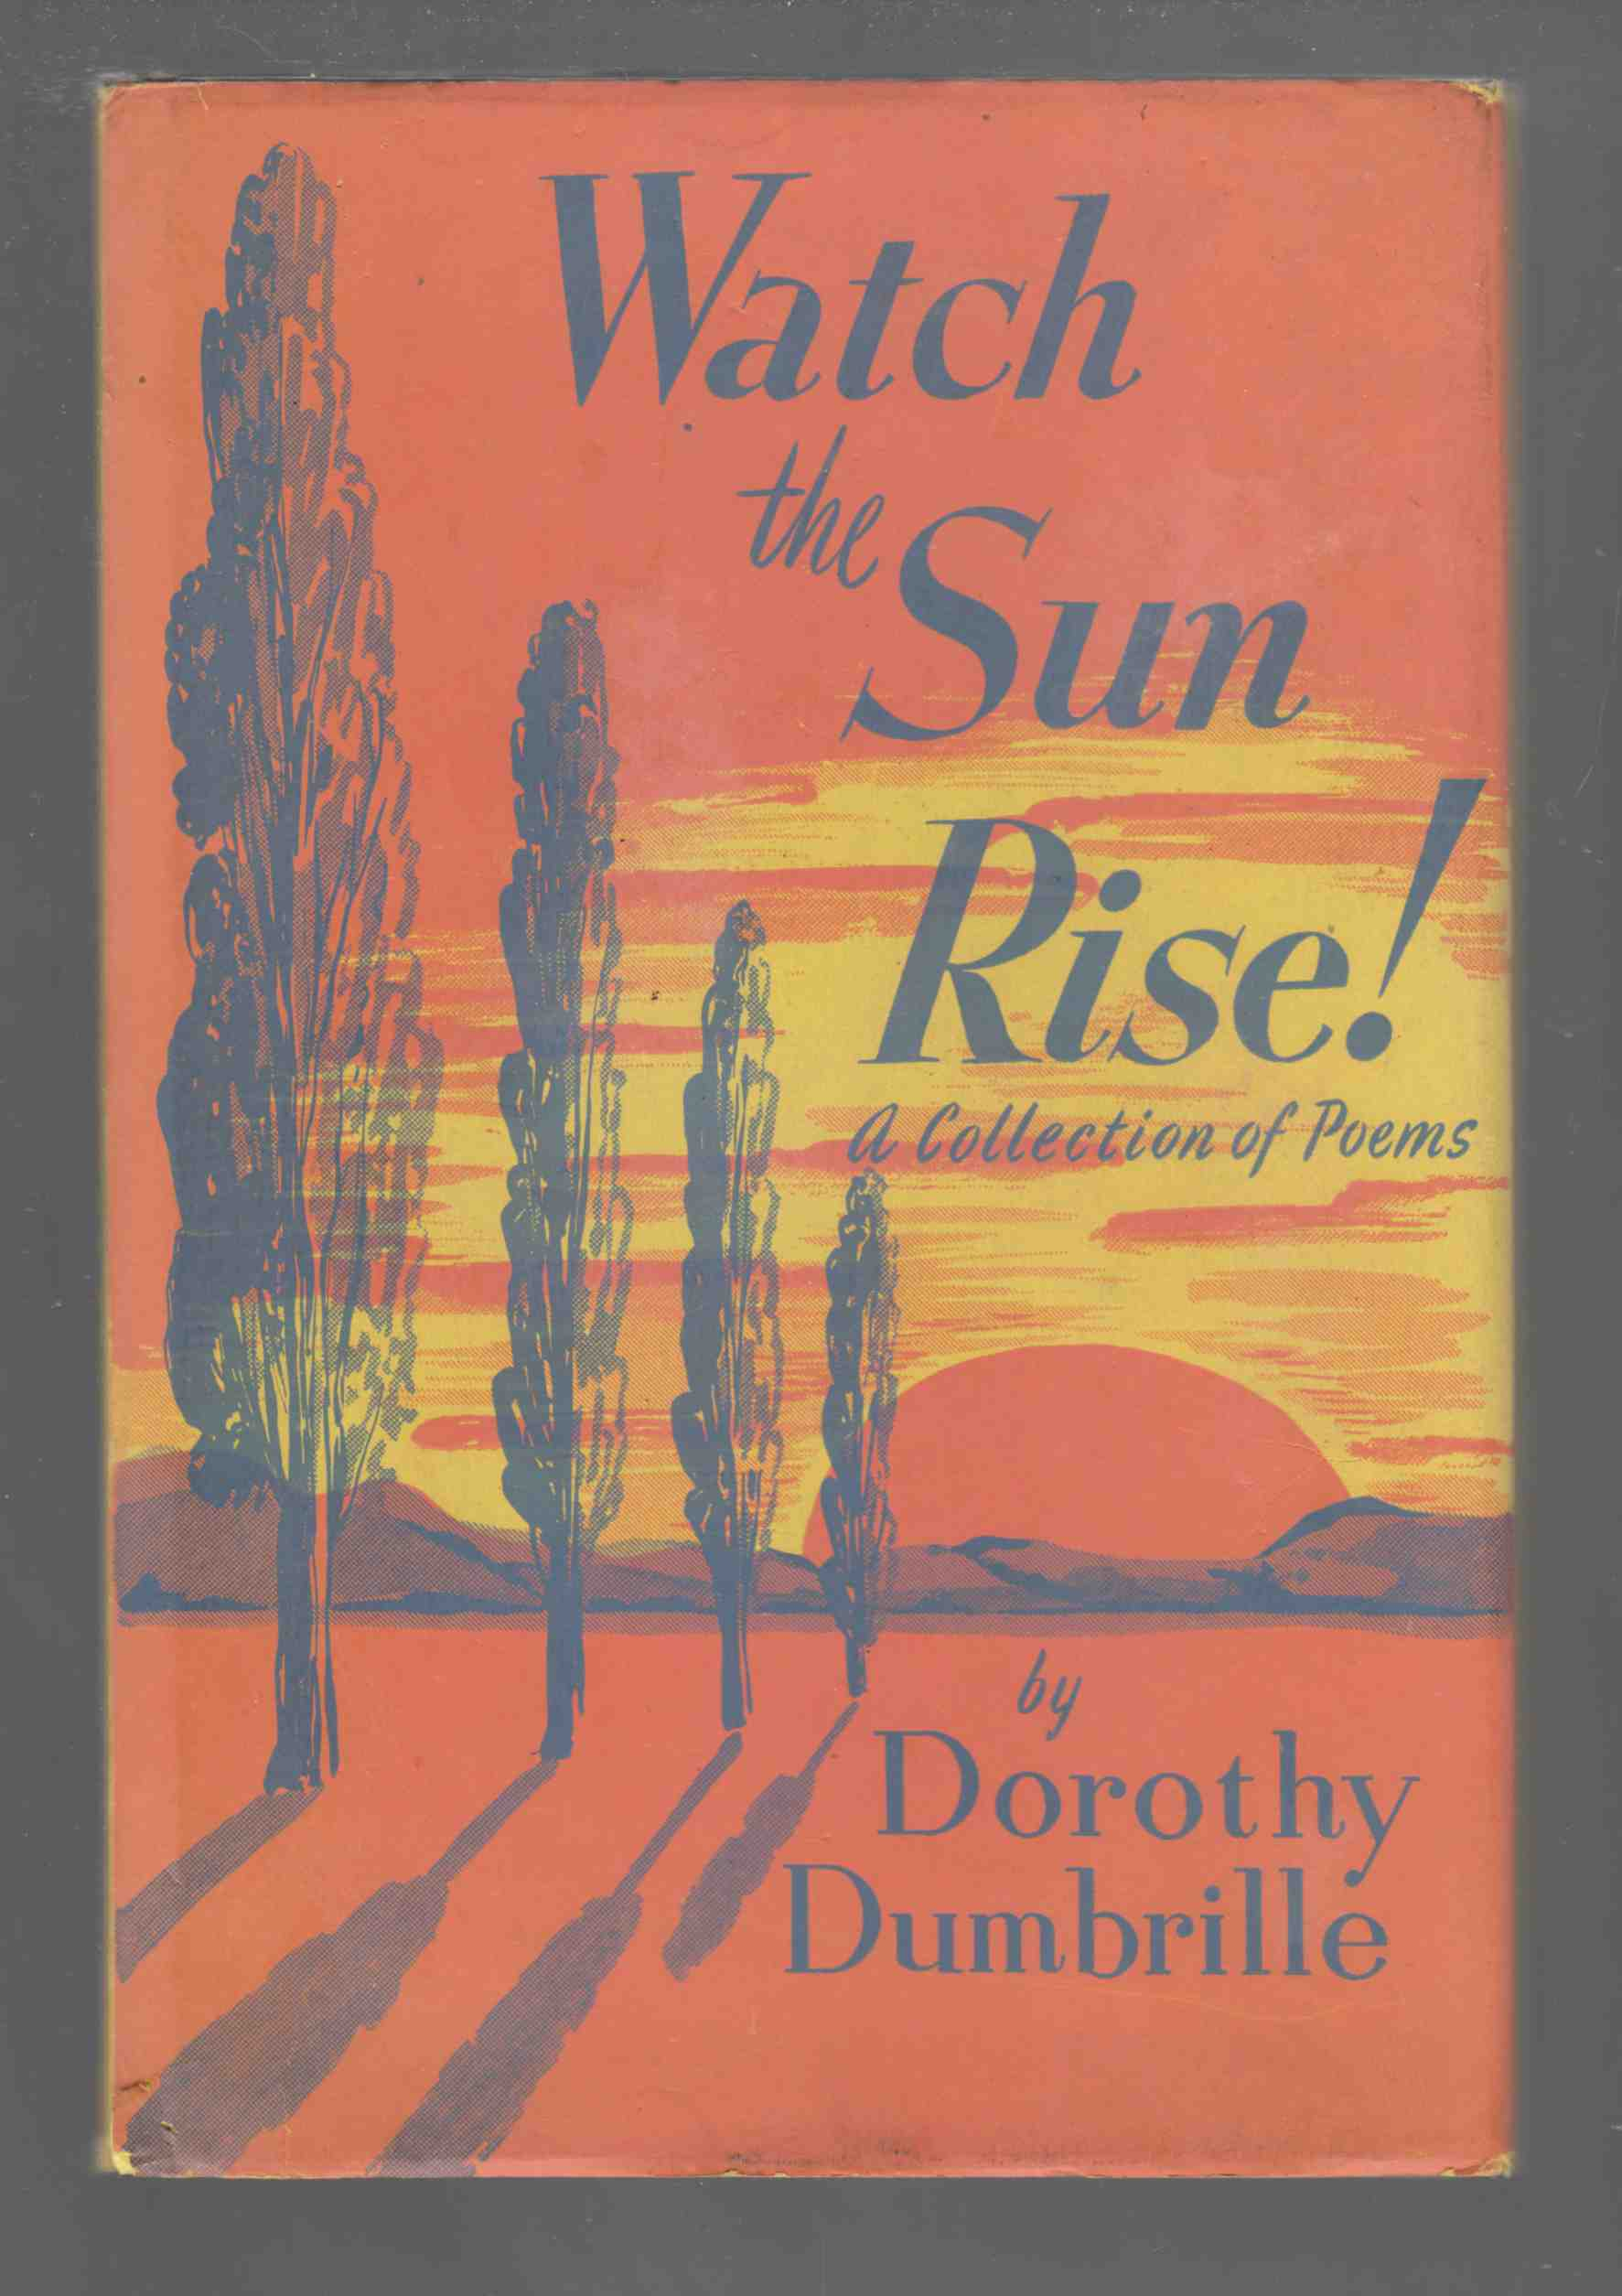 Image for Watch the Sun Rise!